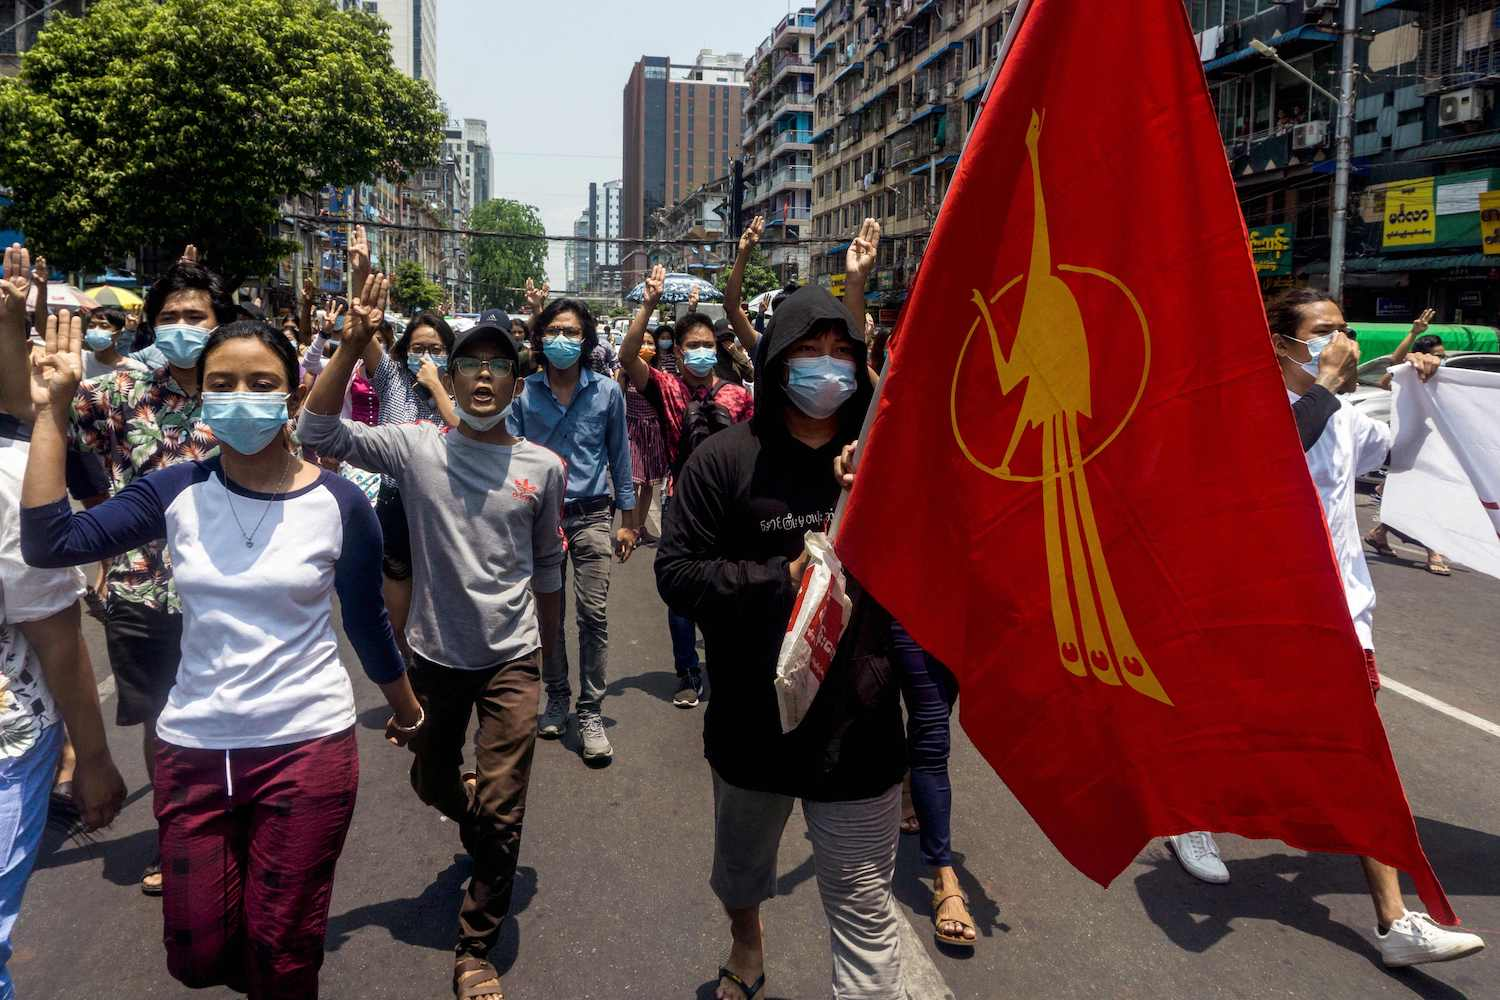 A protester holds the Myanmar Student Union flag as others make the three-finger salute during a demonstration against the military coup in Yangon on Friday. (Photo by Stringer via AFP)